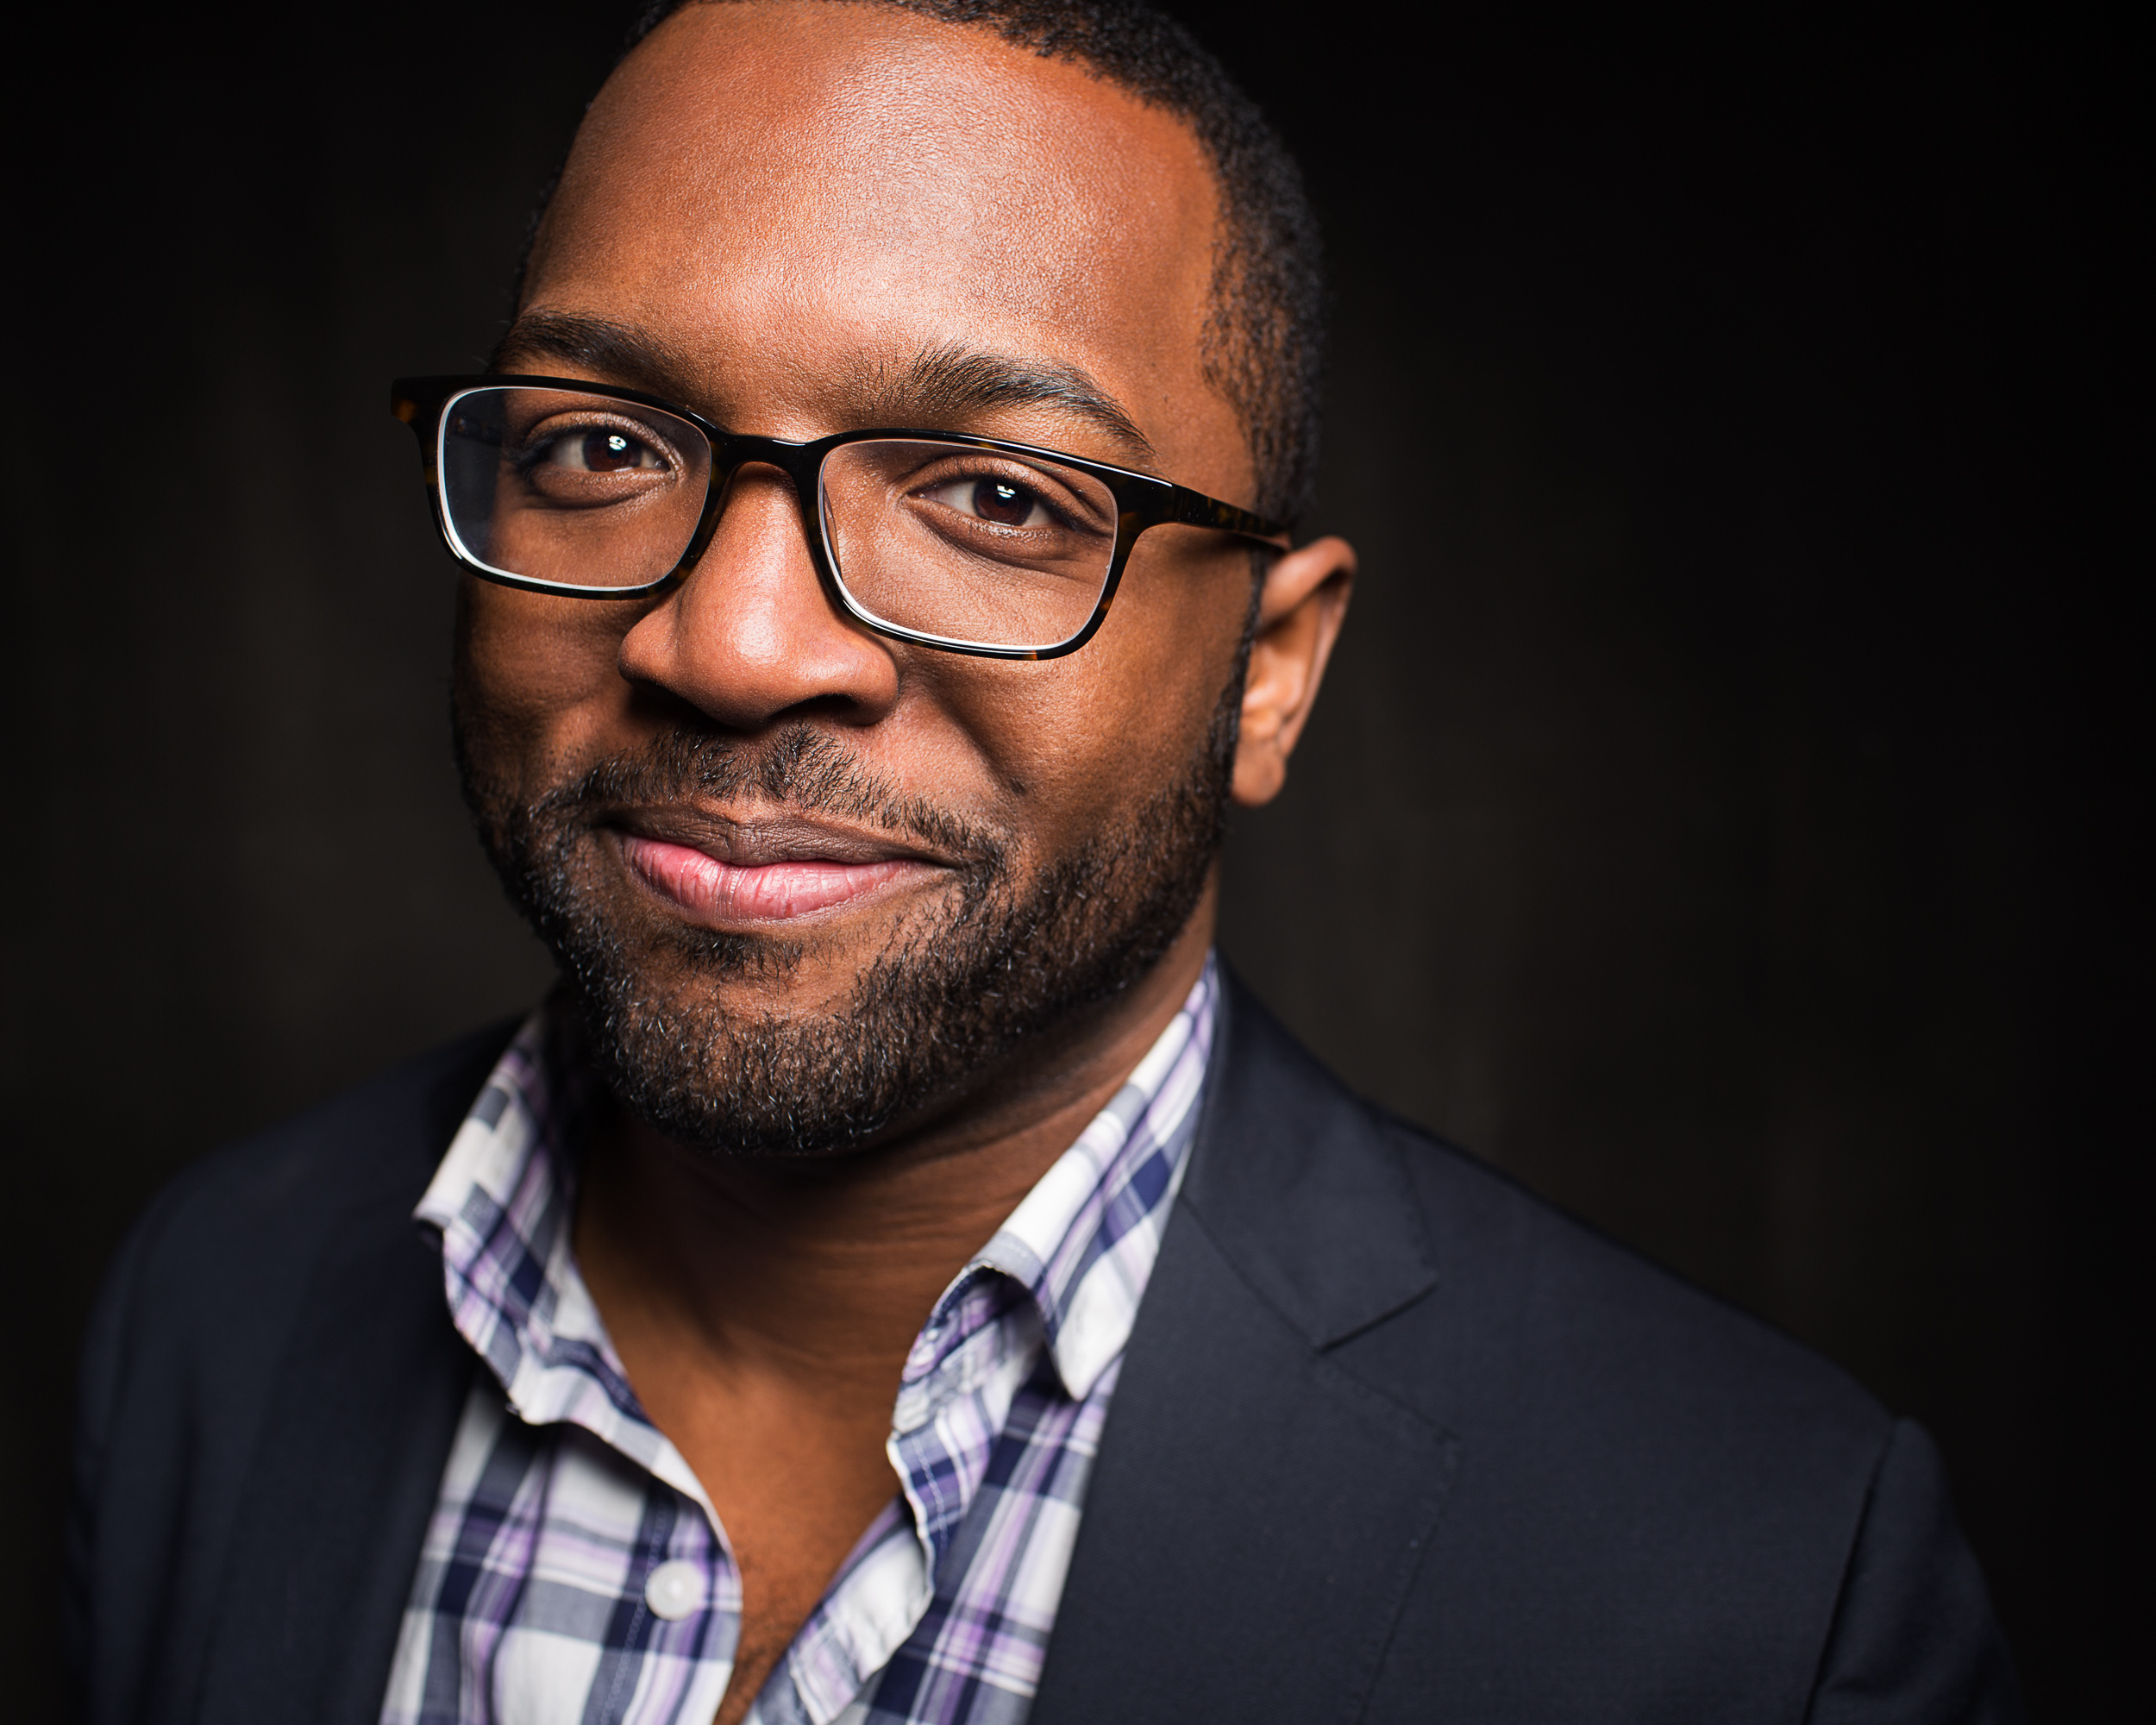 Baratunde Thurston - Author